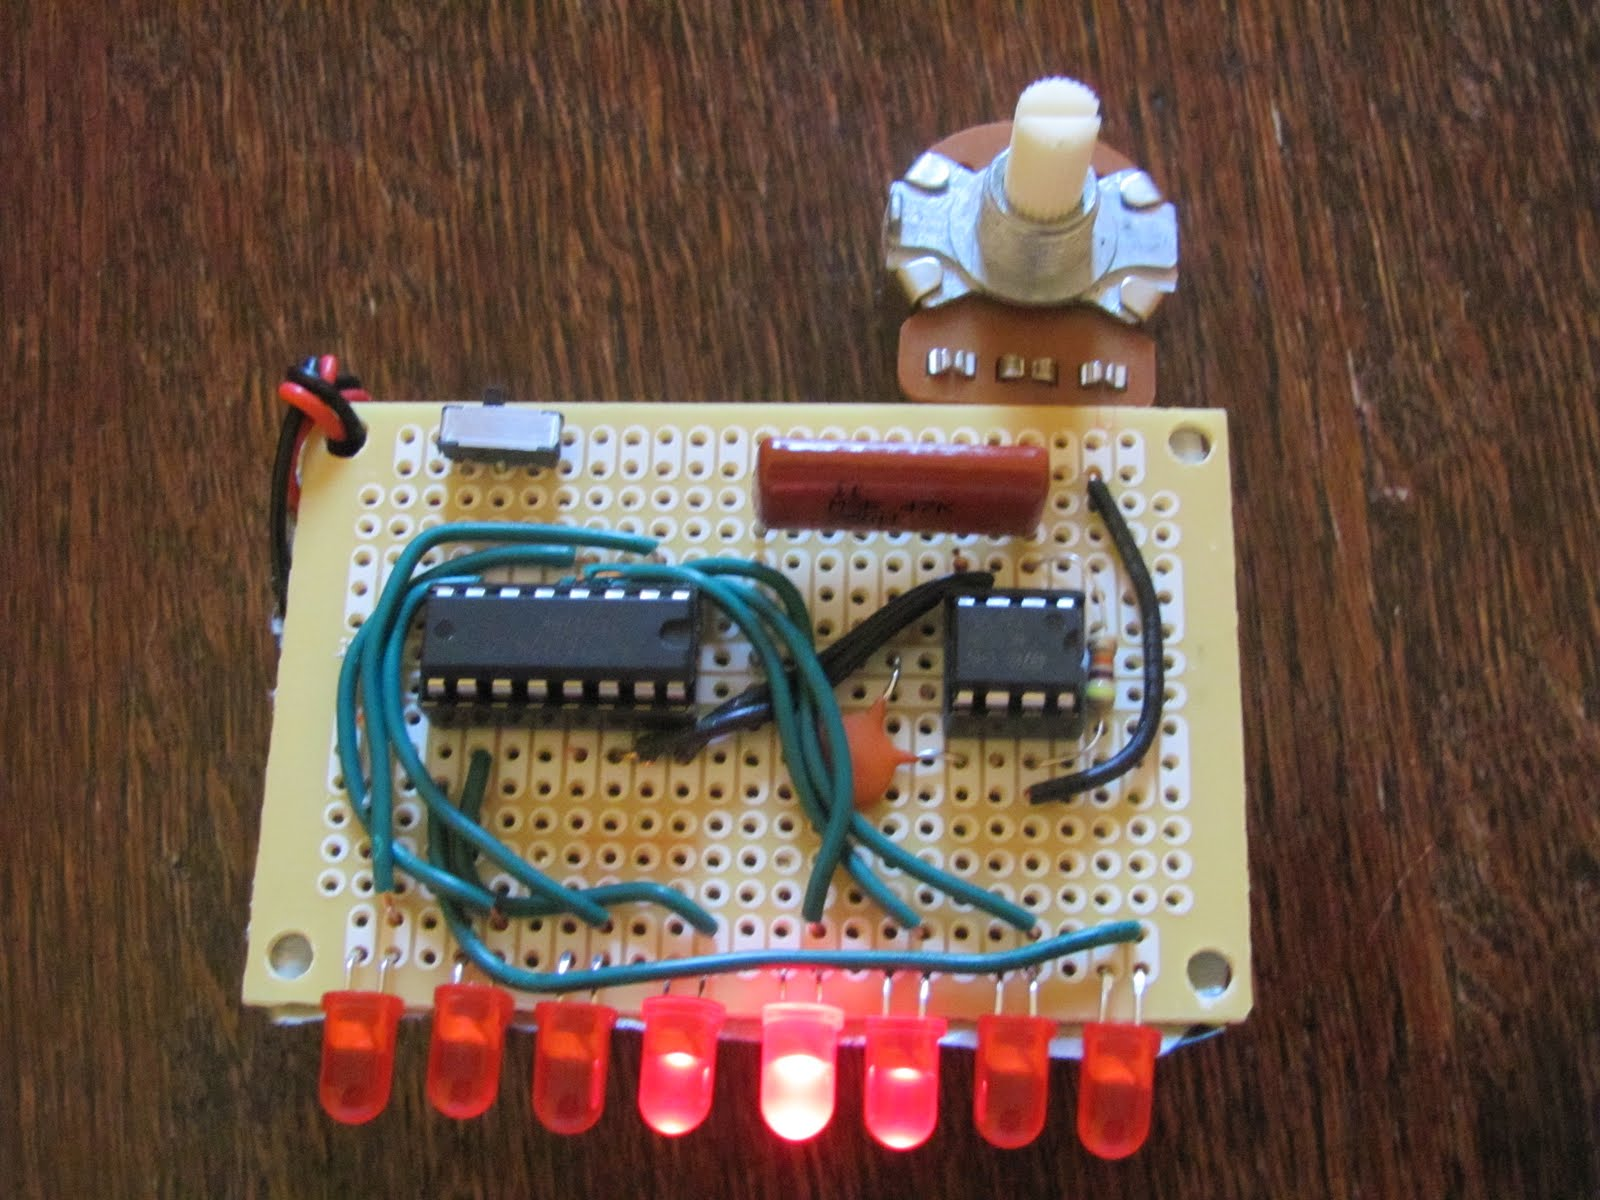 Projects Fun Knight Rider Using 555 And 4017 Ic Timer Astable Mode Circuit They Flash One At A Time Chasing Each Other In The Is Wired As An Oscillator